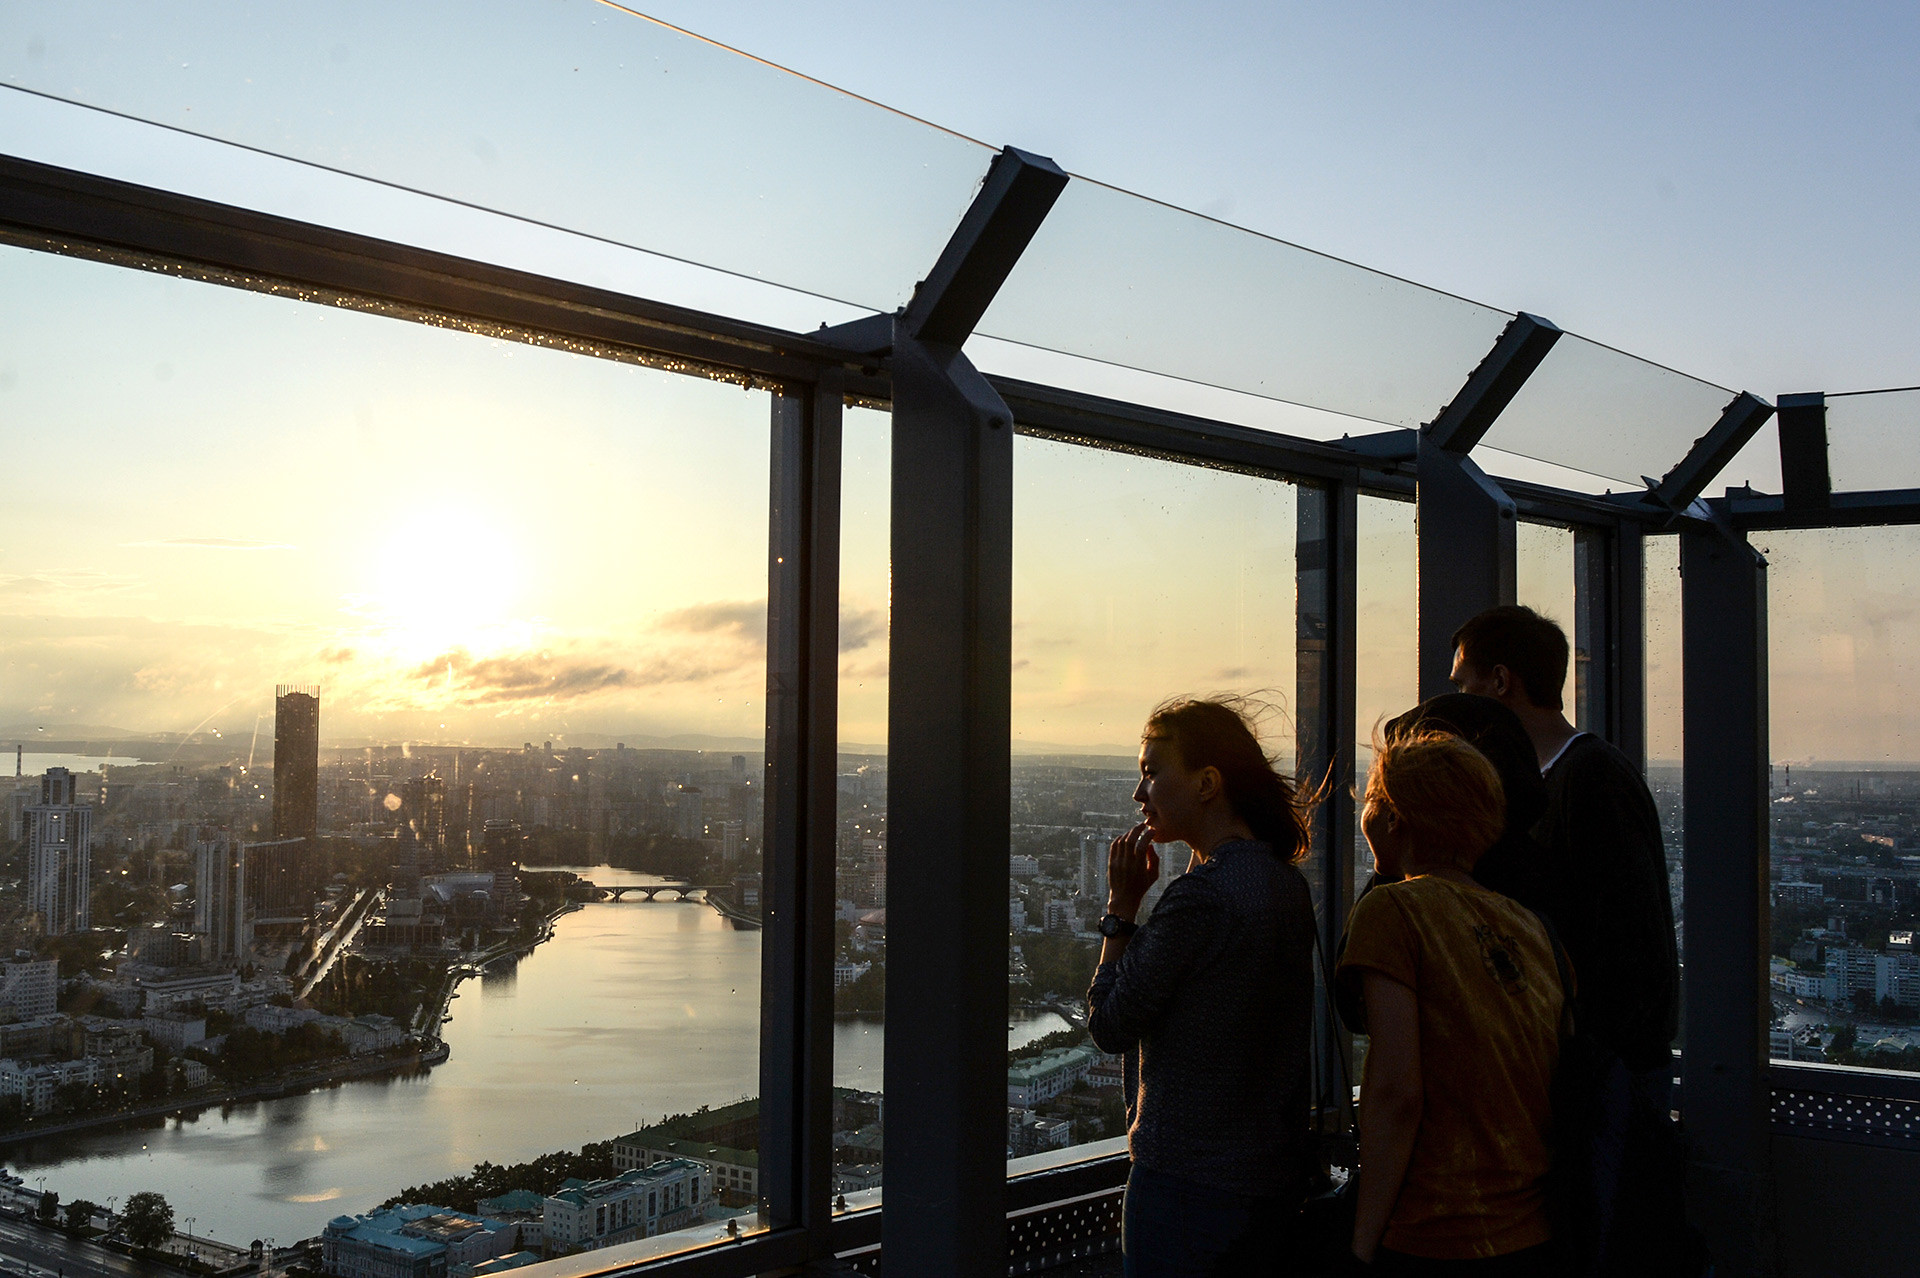 Visitors on the observation deck in the Vysotsky business center in Yekaterinburg.